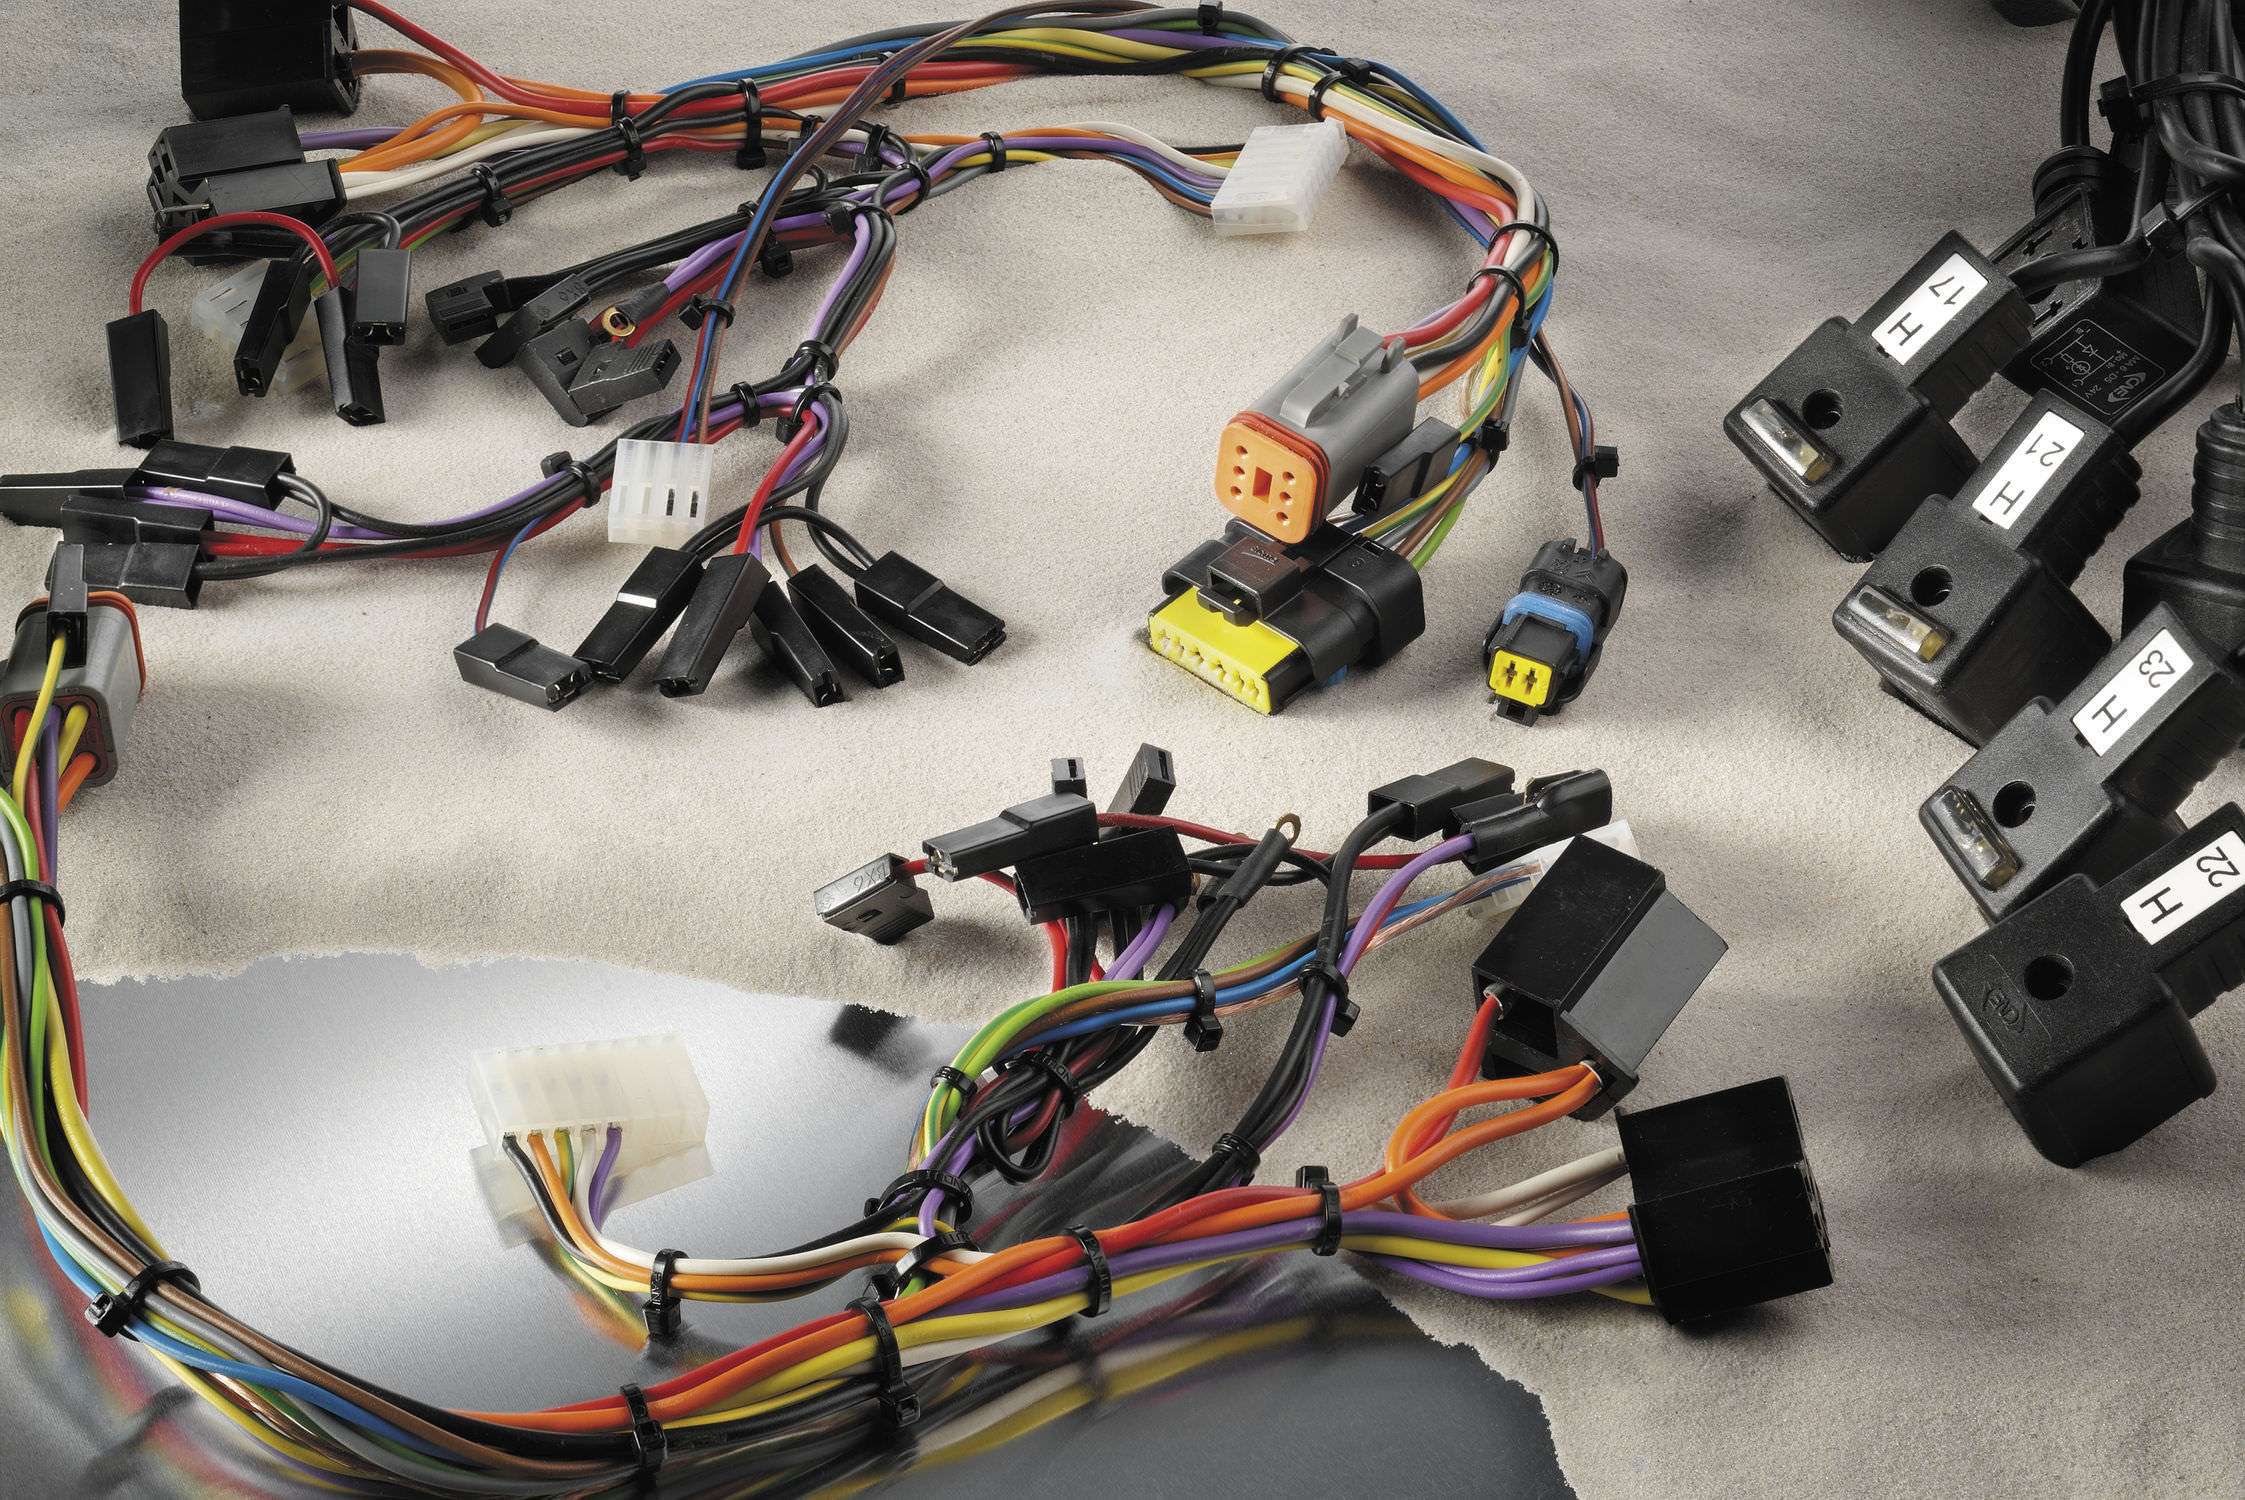 Wiring Harness Crusader Basic Power List Terms Com Sterling Truck Radio Electric Agco Bv